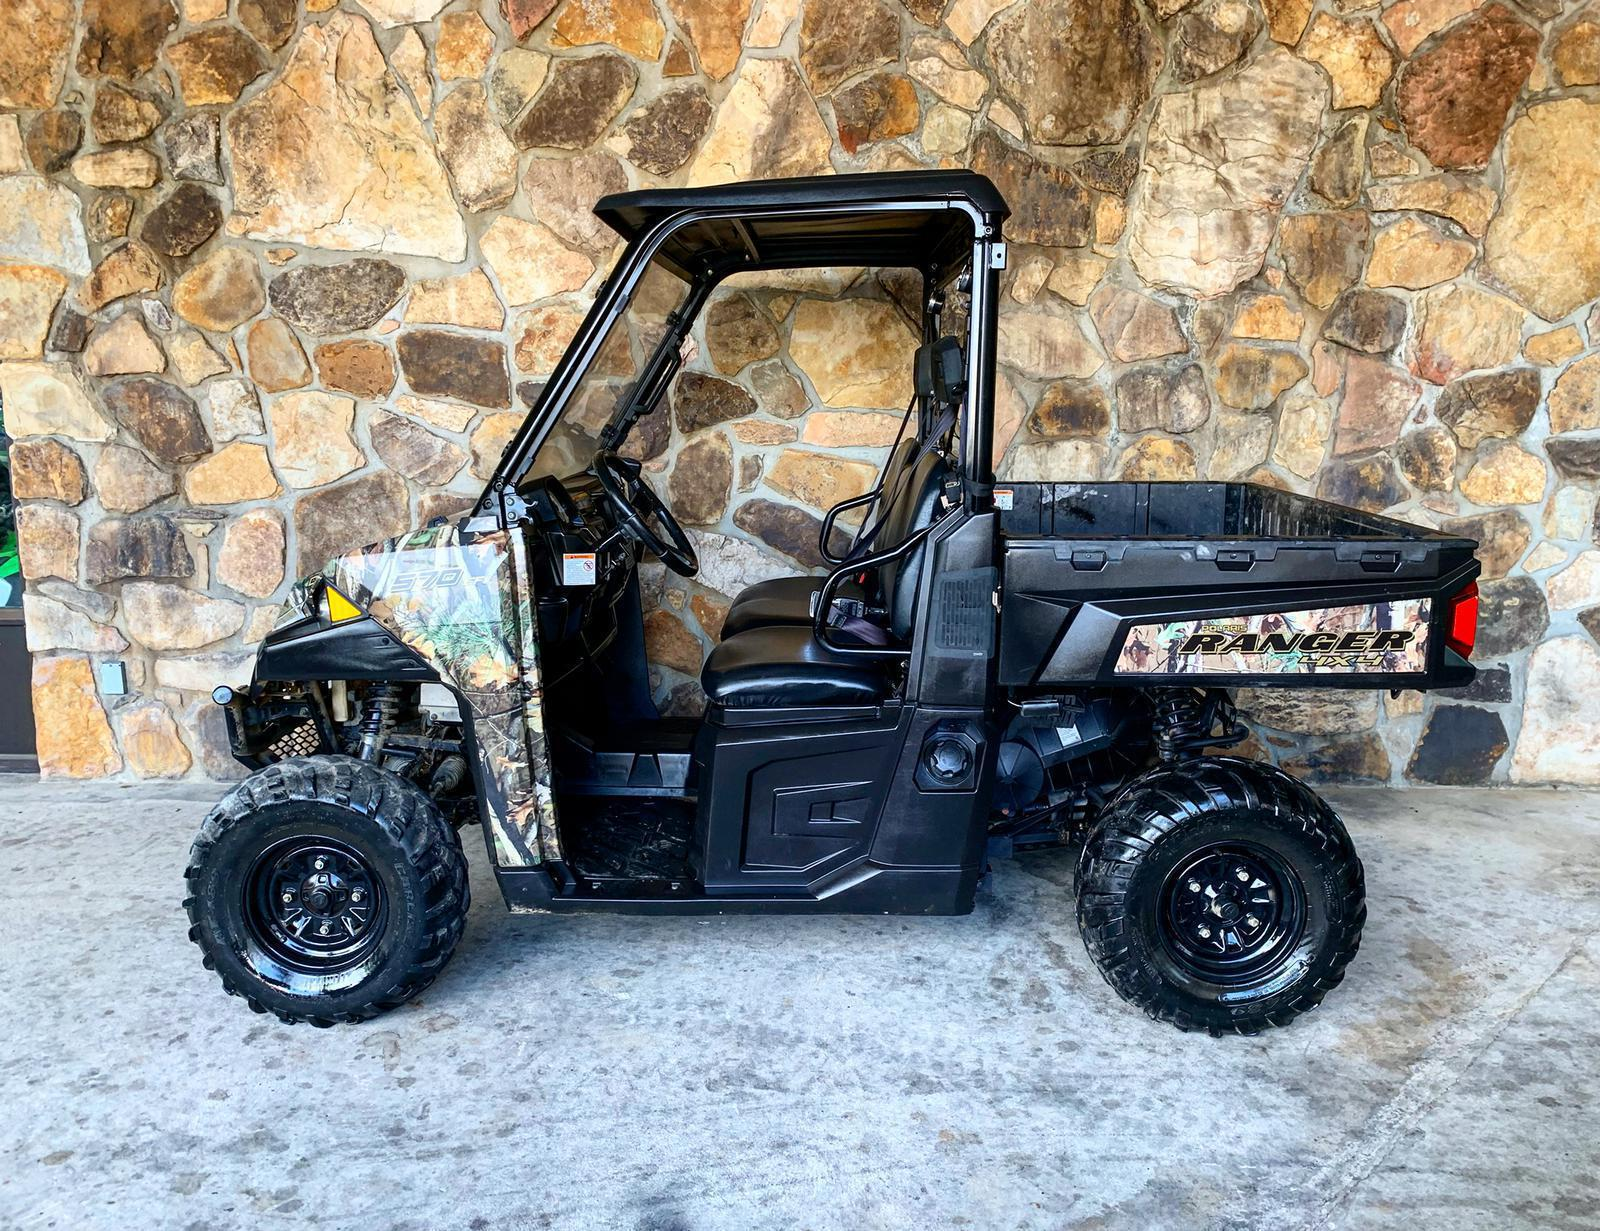 Inventory from Polaris Industries Shake and Bake Motorsports